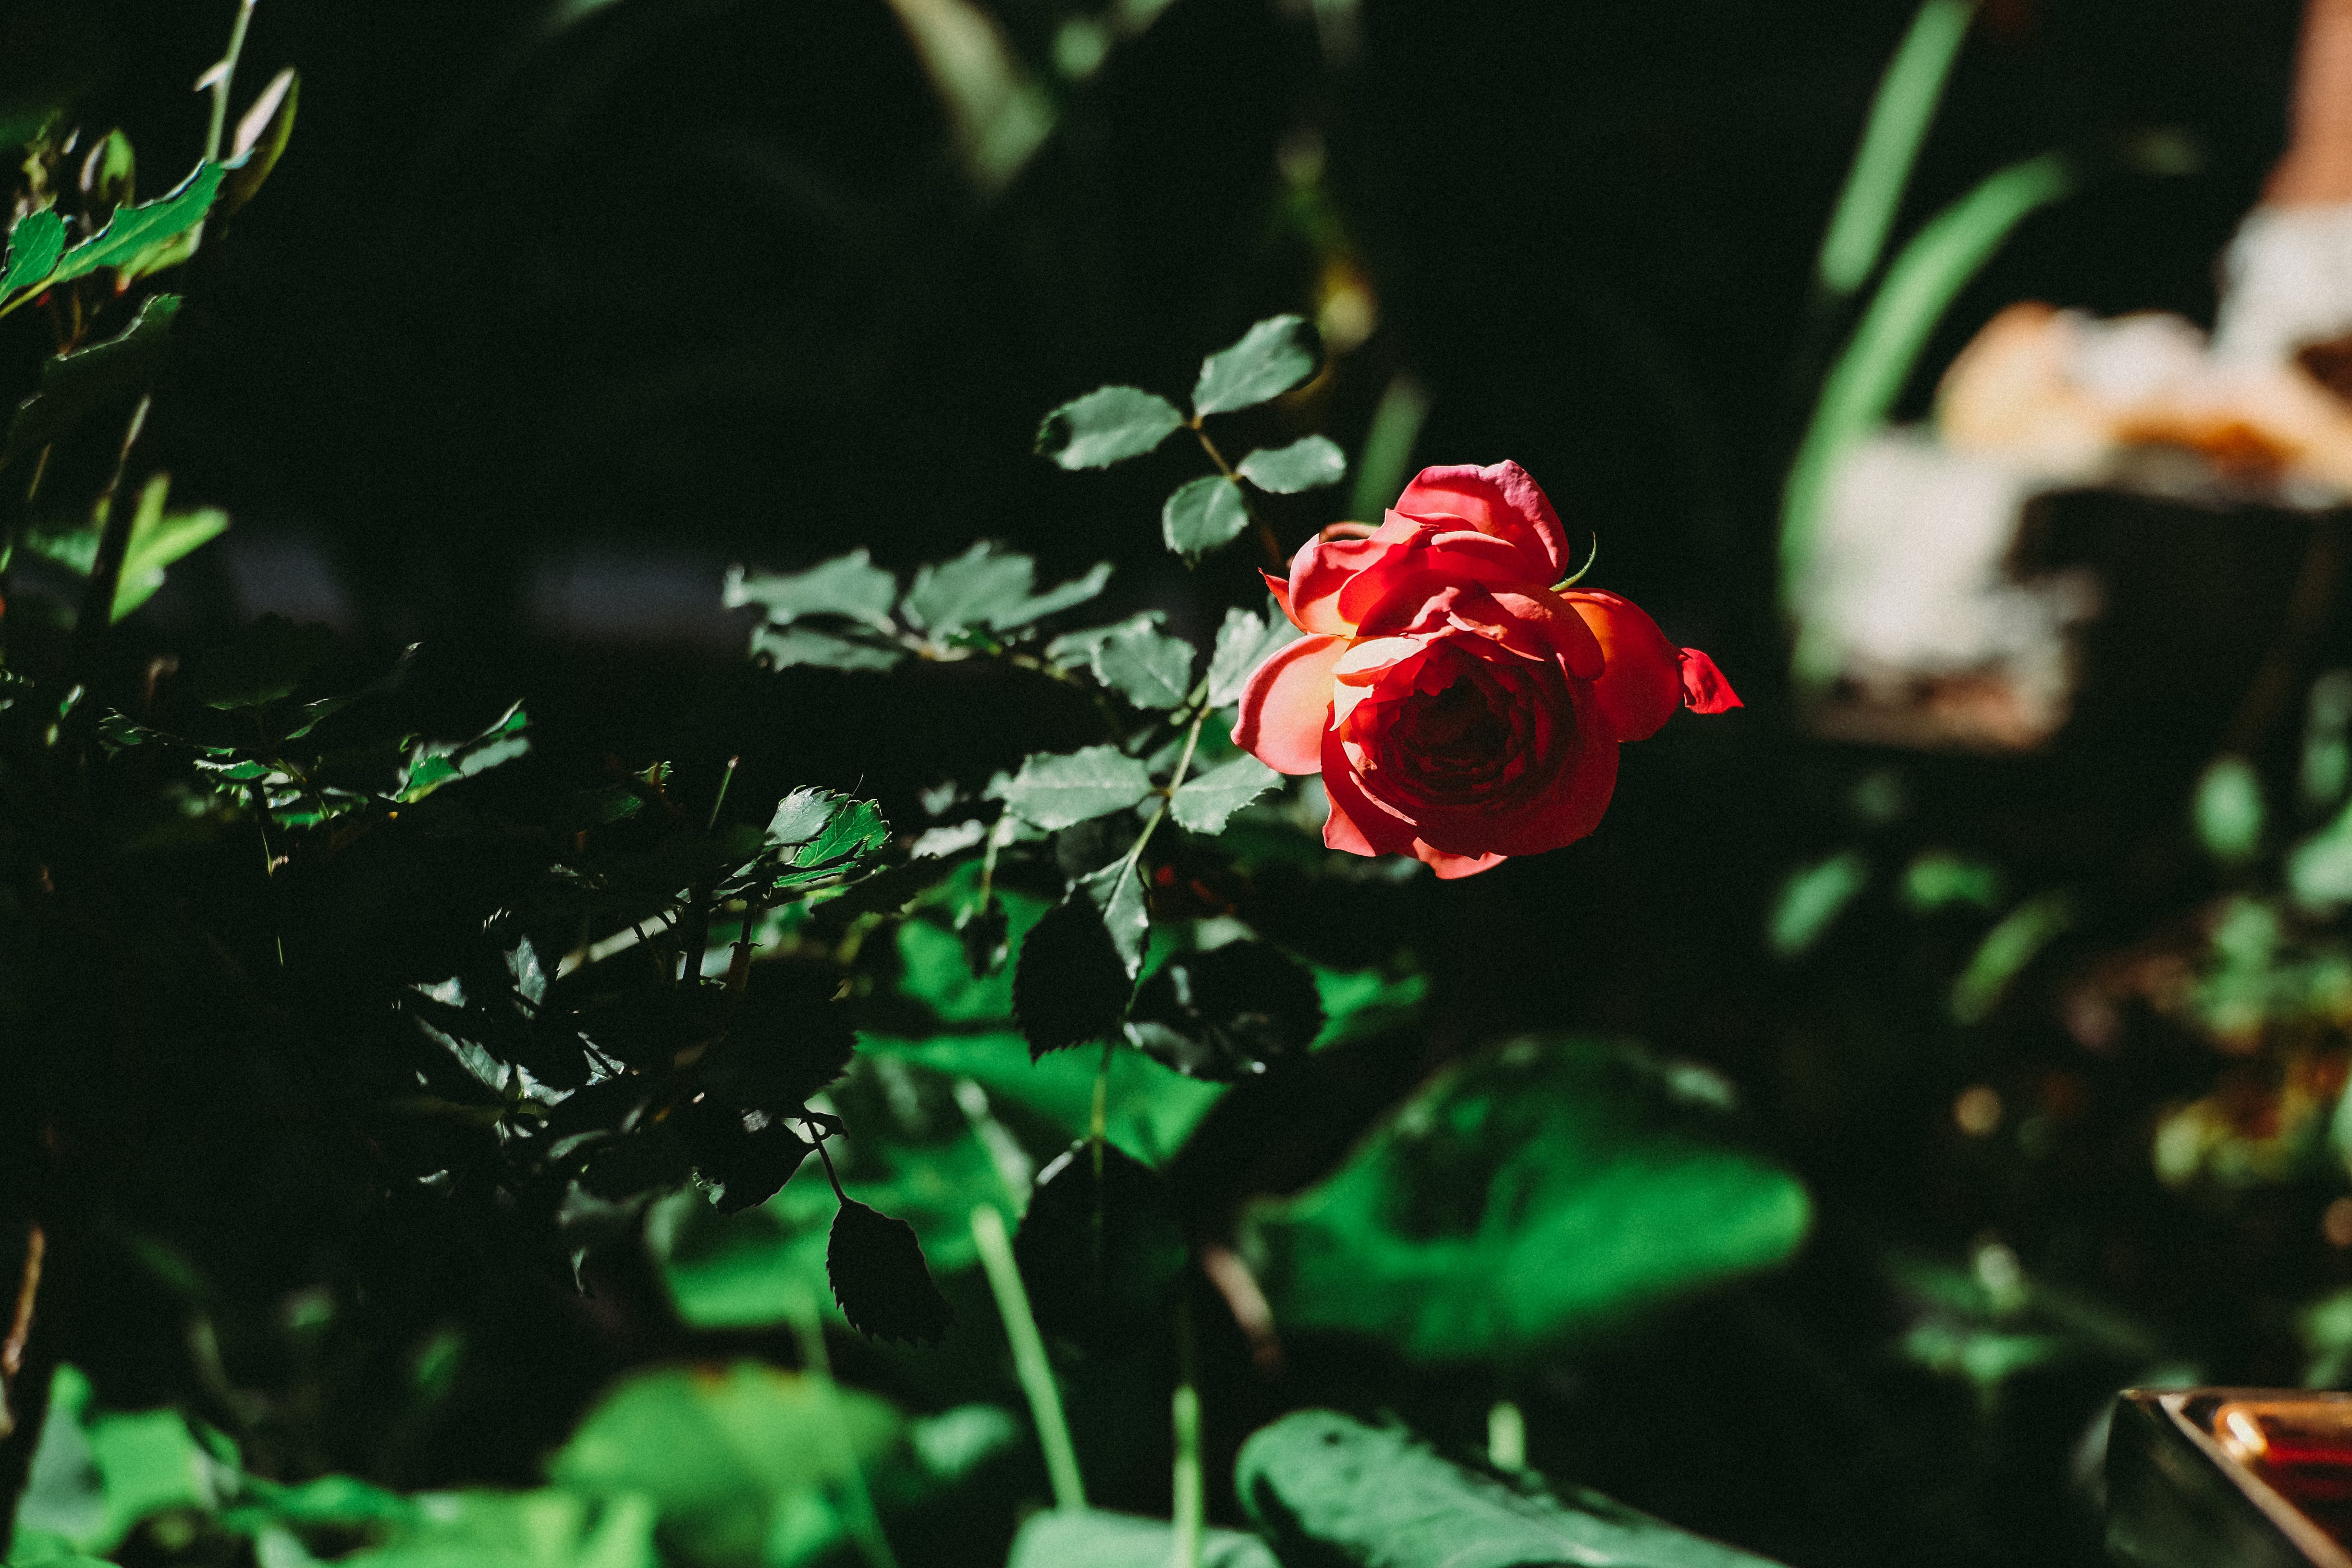 Closeup Photography of Red Rose